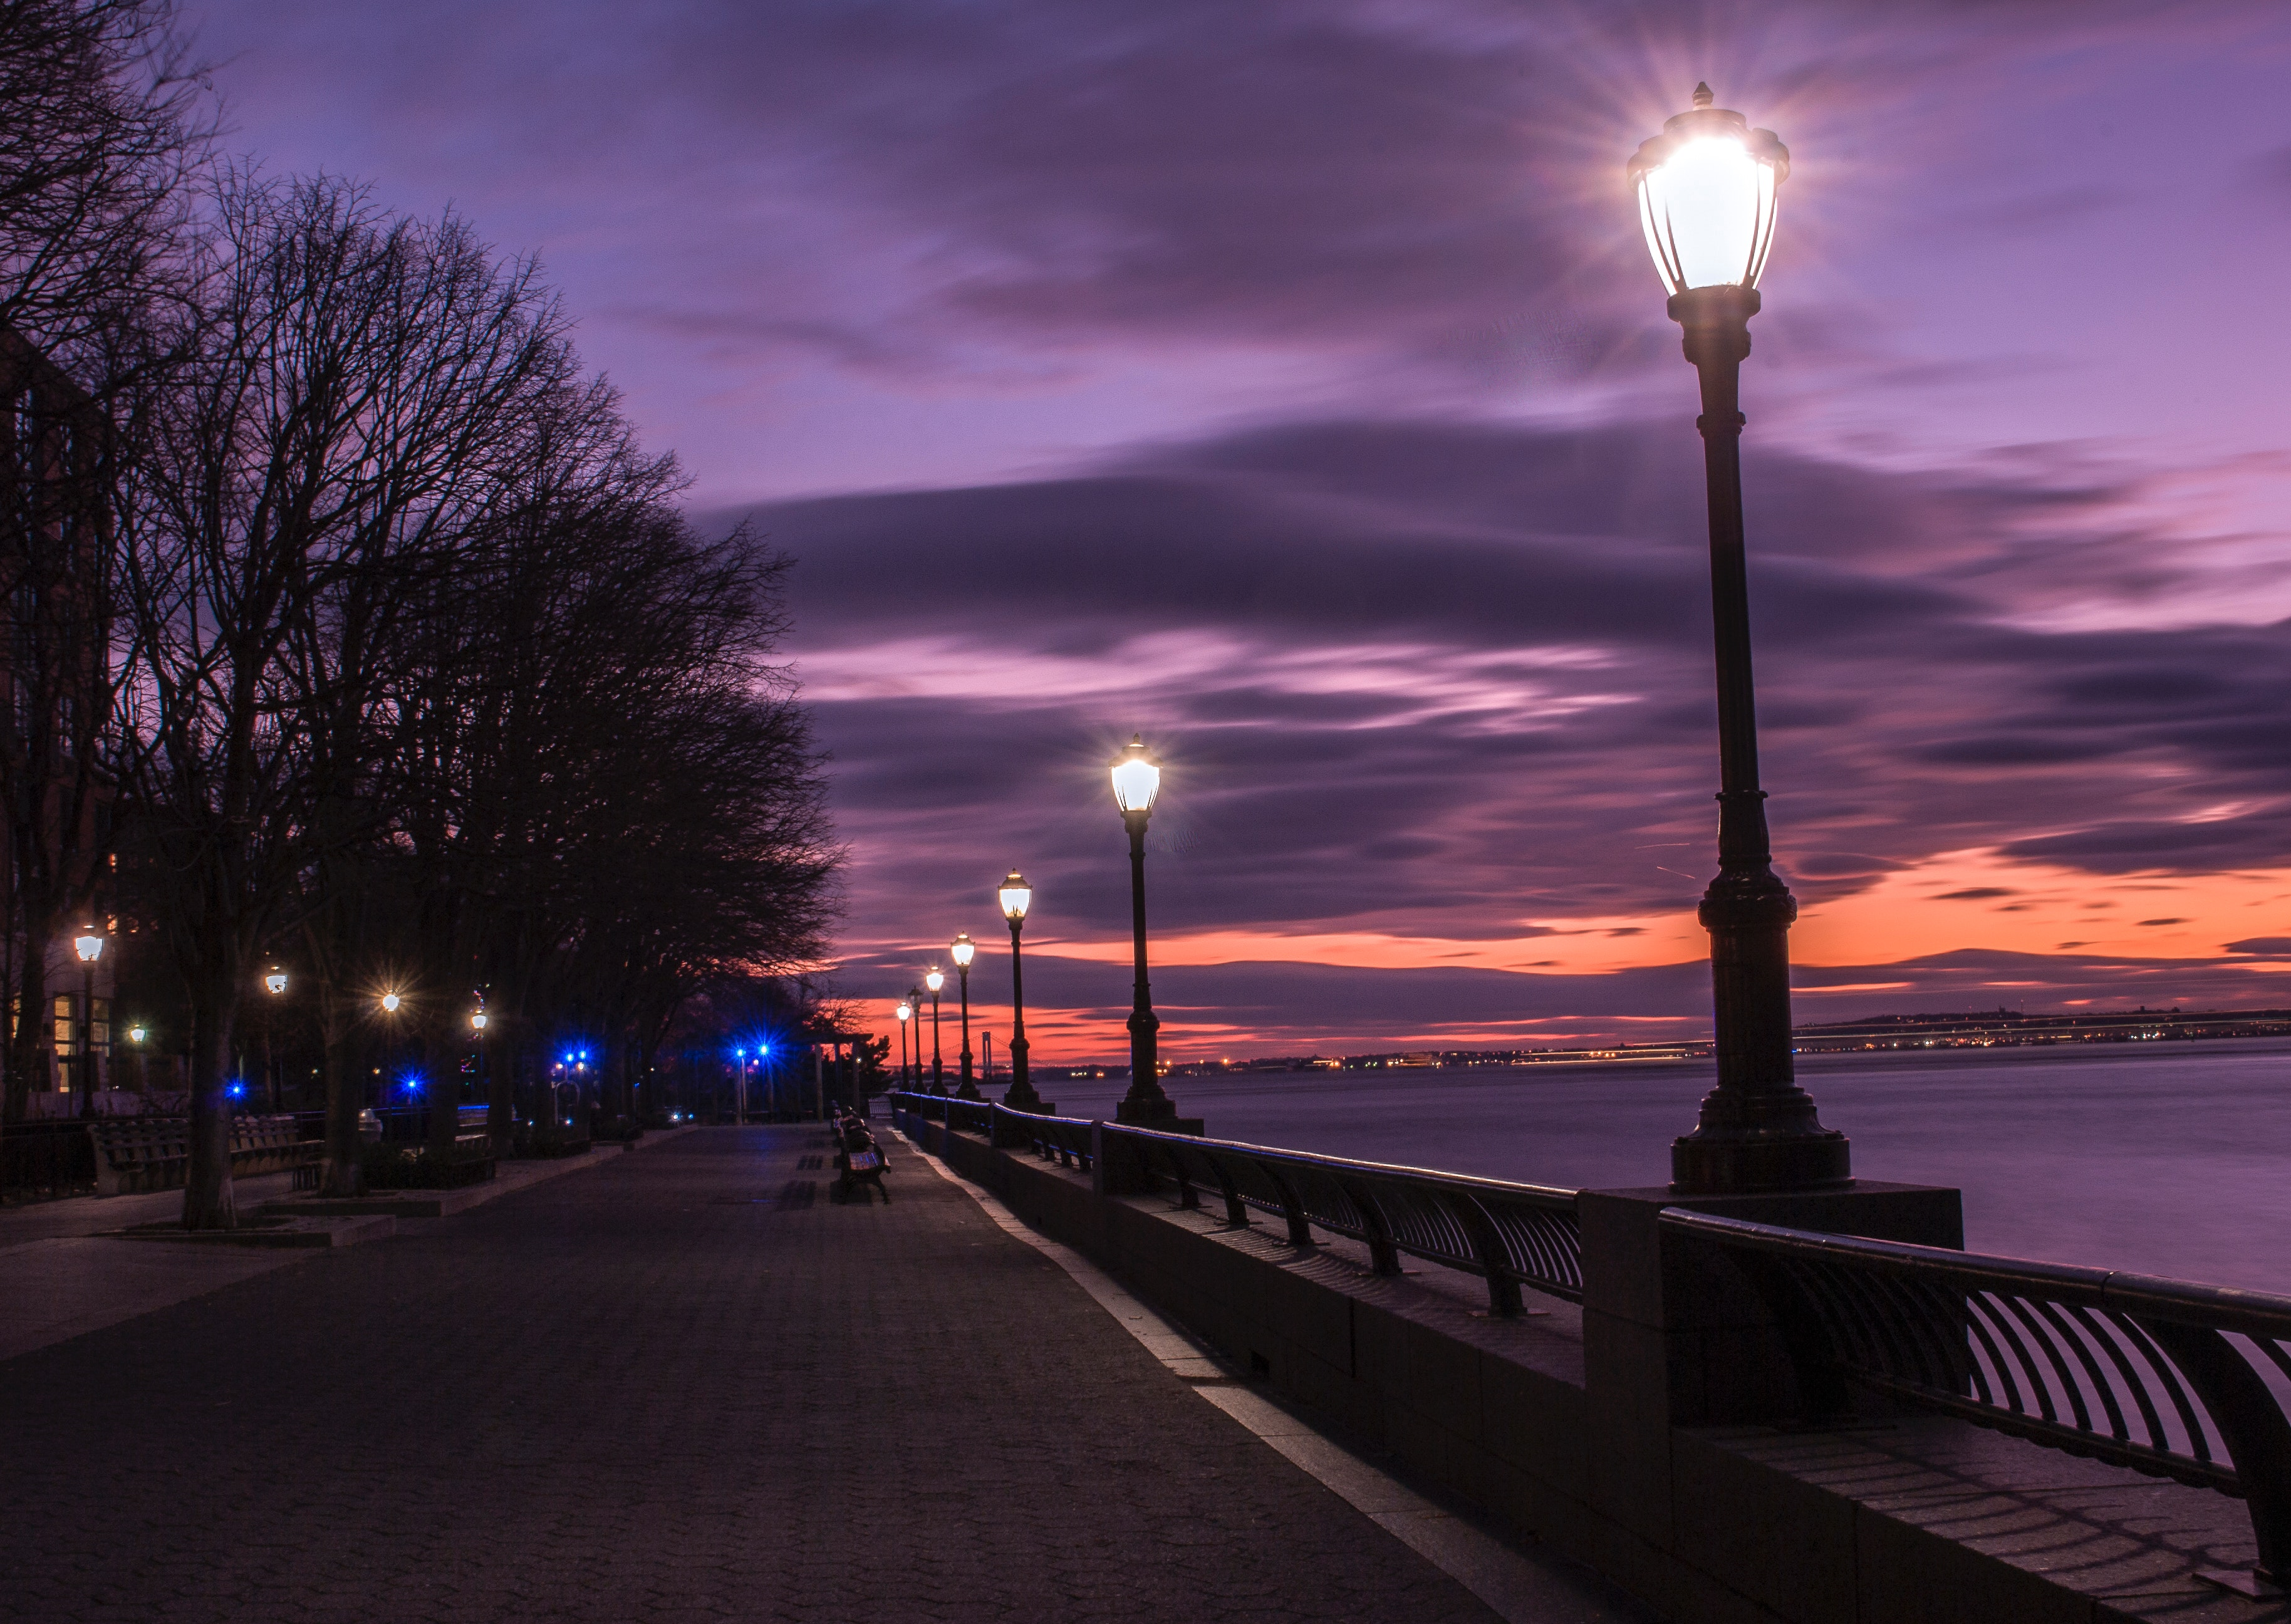 Photography of Turned on Street Lamps Beside Bay during Night Time, Architecture, Outdoors, Urban, Trees, HQ Photo